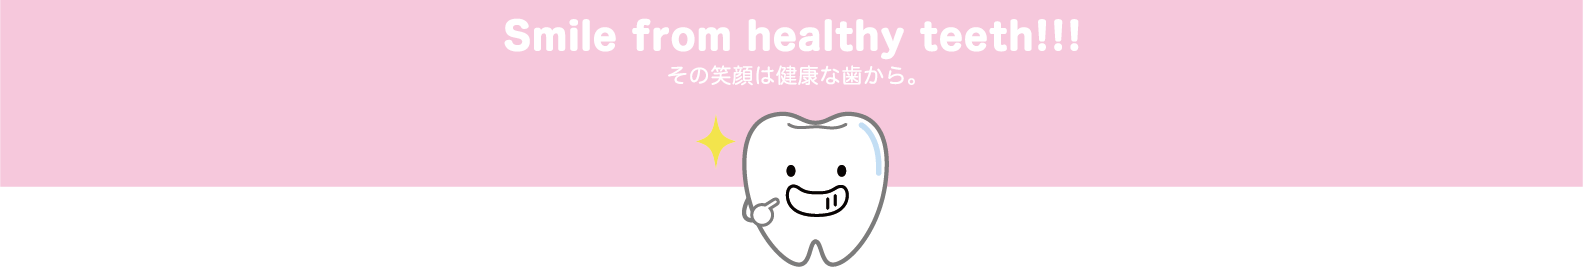 Smile from healthy teeth!!!その笑顔は健康な歯から